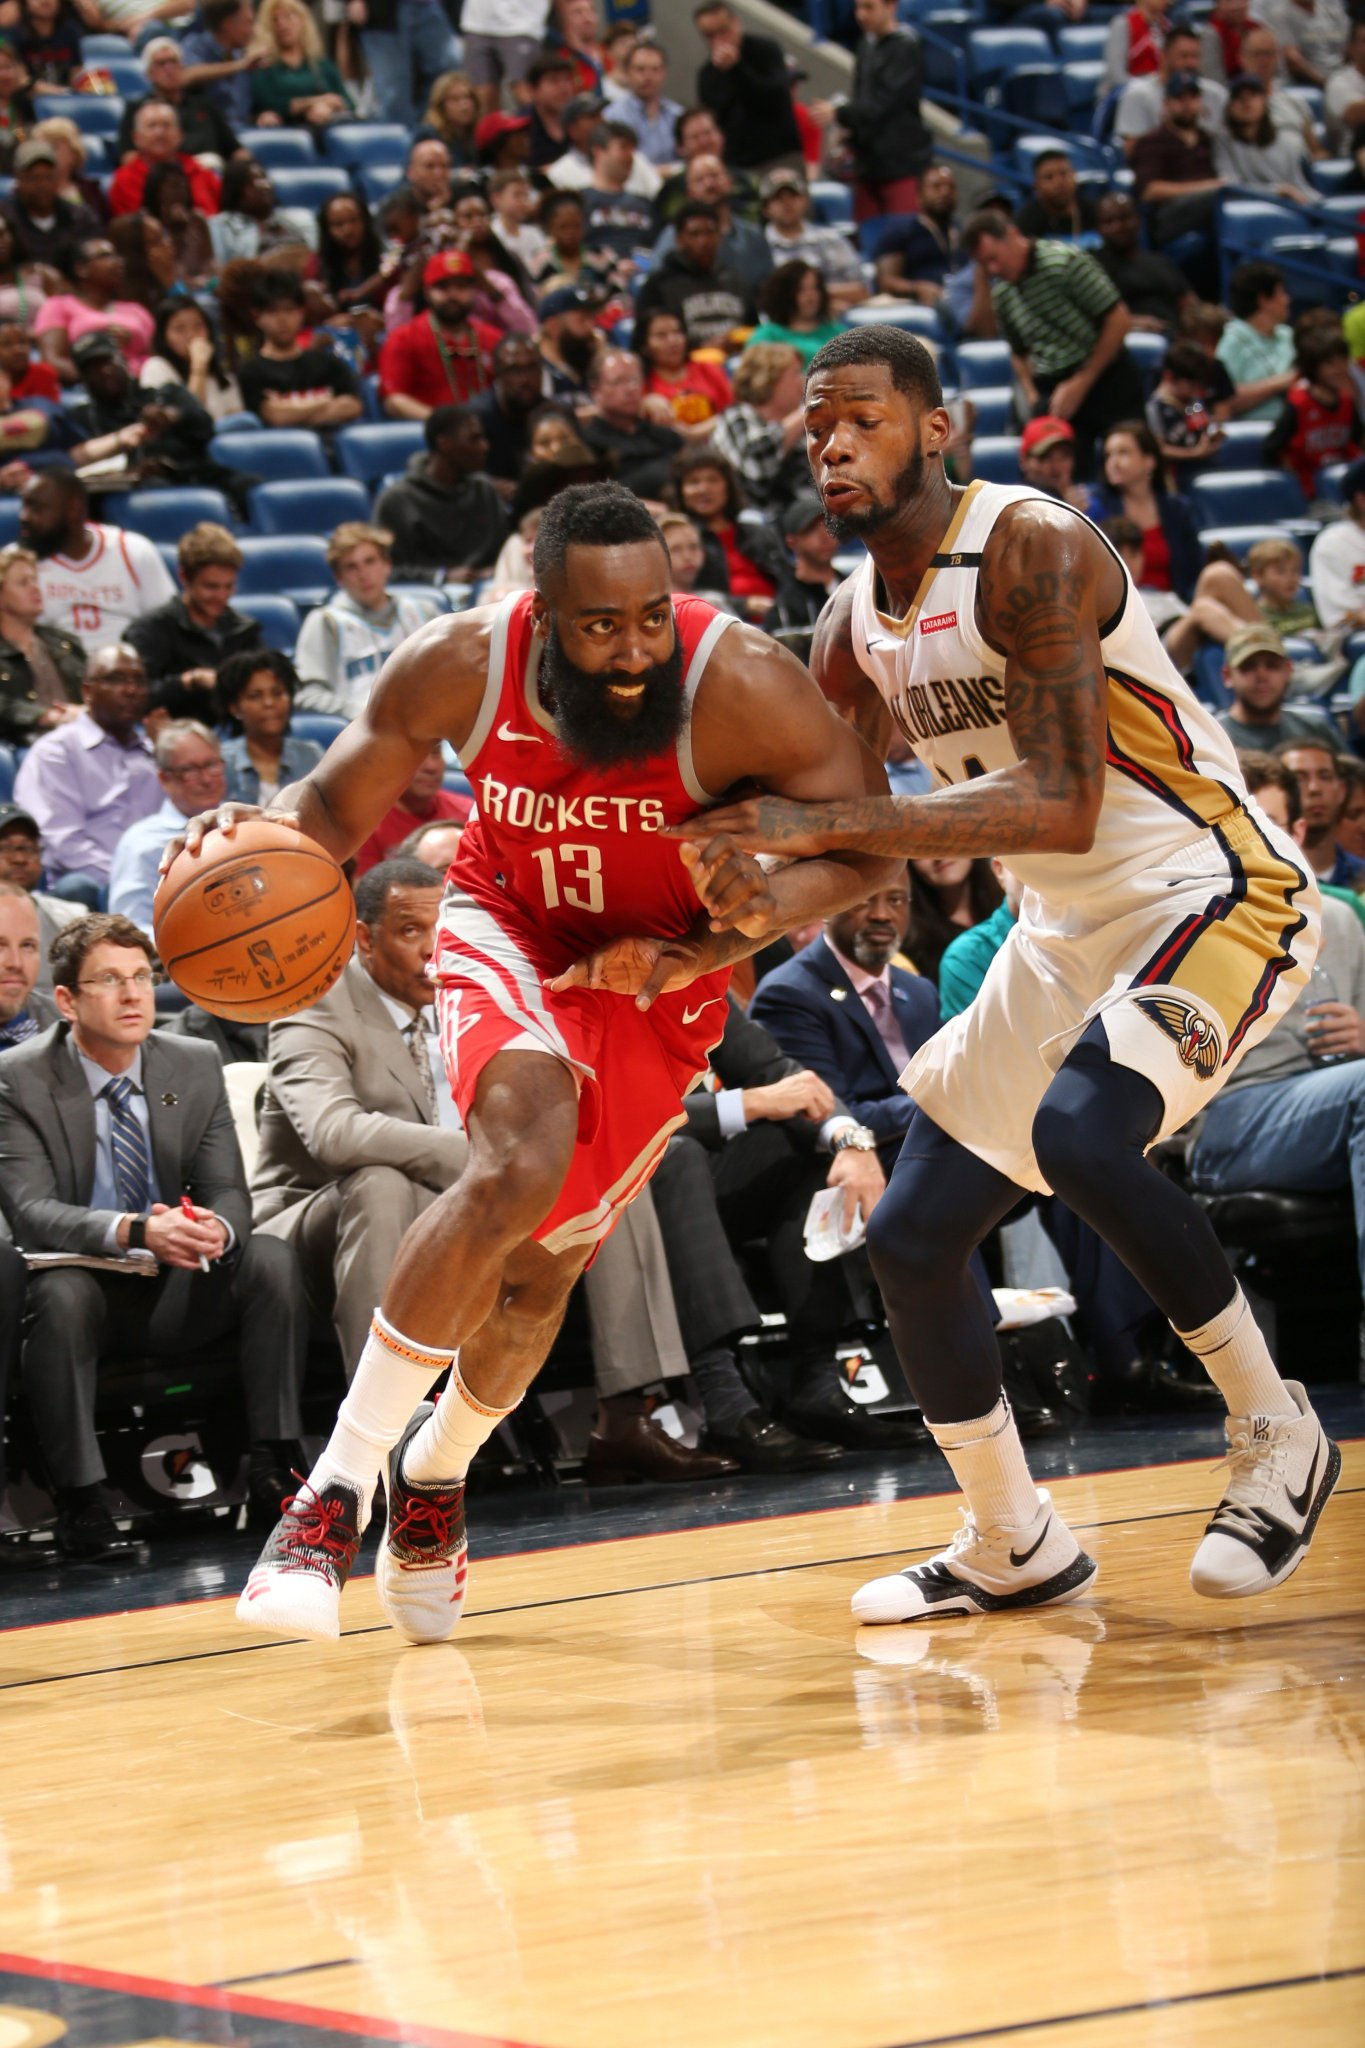 Big game for The Beard to lead the @HoustonRockets to the W!  32 PTS | 11 REB | 8 AST  #Rockets 107 | #DoItBig 101 https://t.co/DpZ7HAv0GF